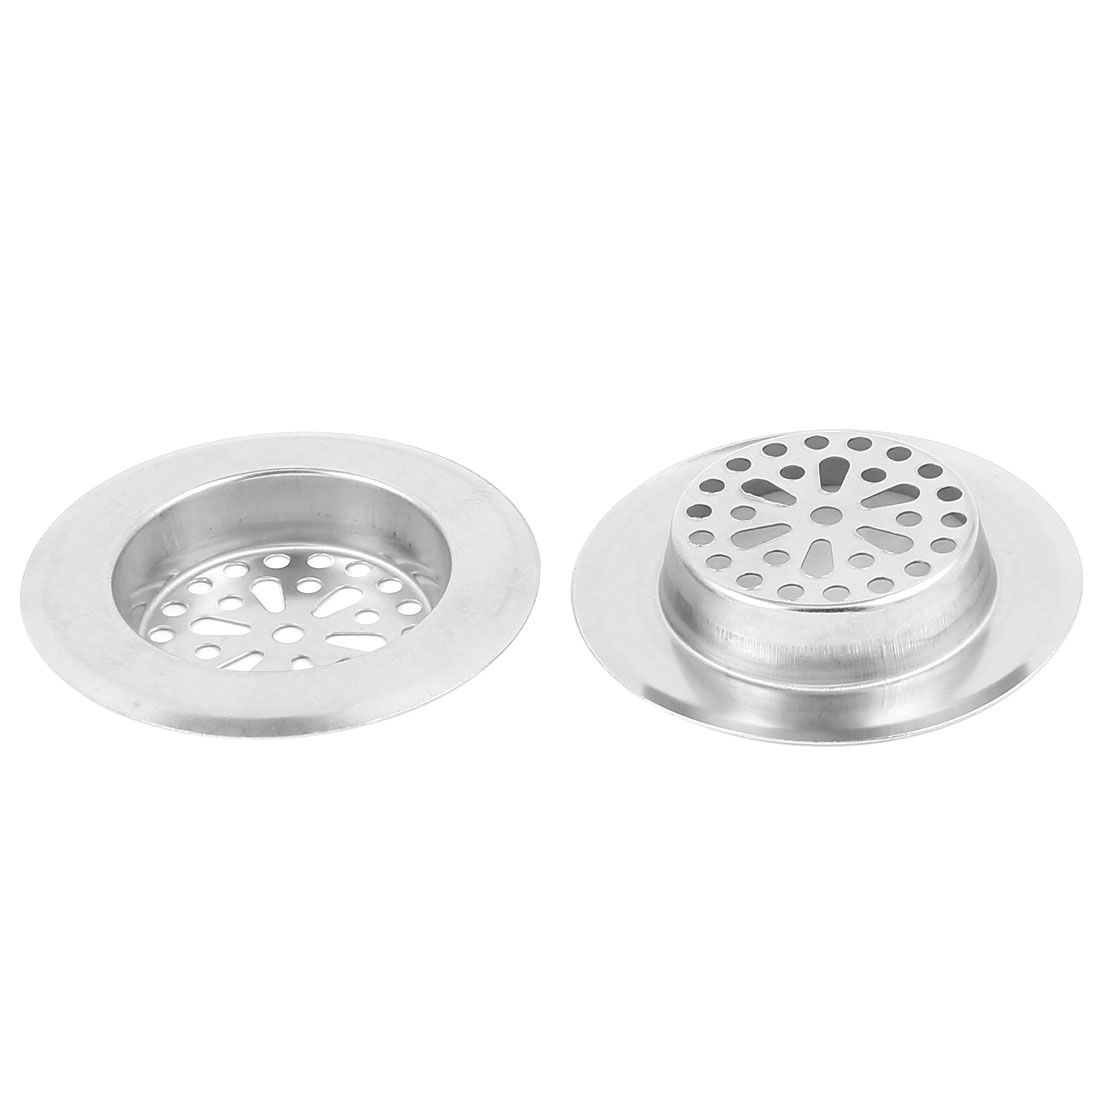 Bathroom Kitchen Stainless Steel Sink Strainer Drainer Filter Stopper 3.1 Inch Top Dia 2 Pcs